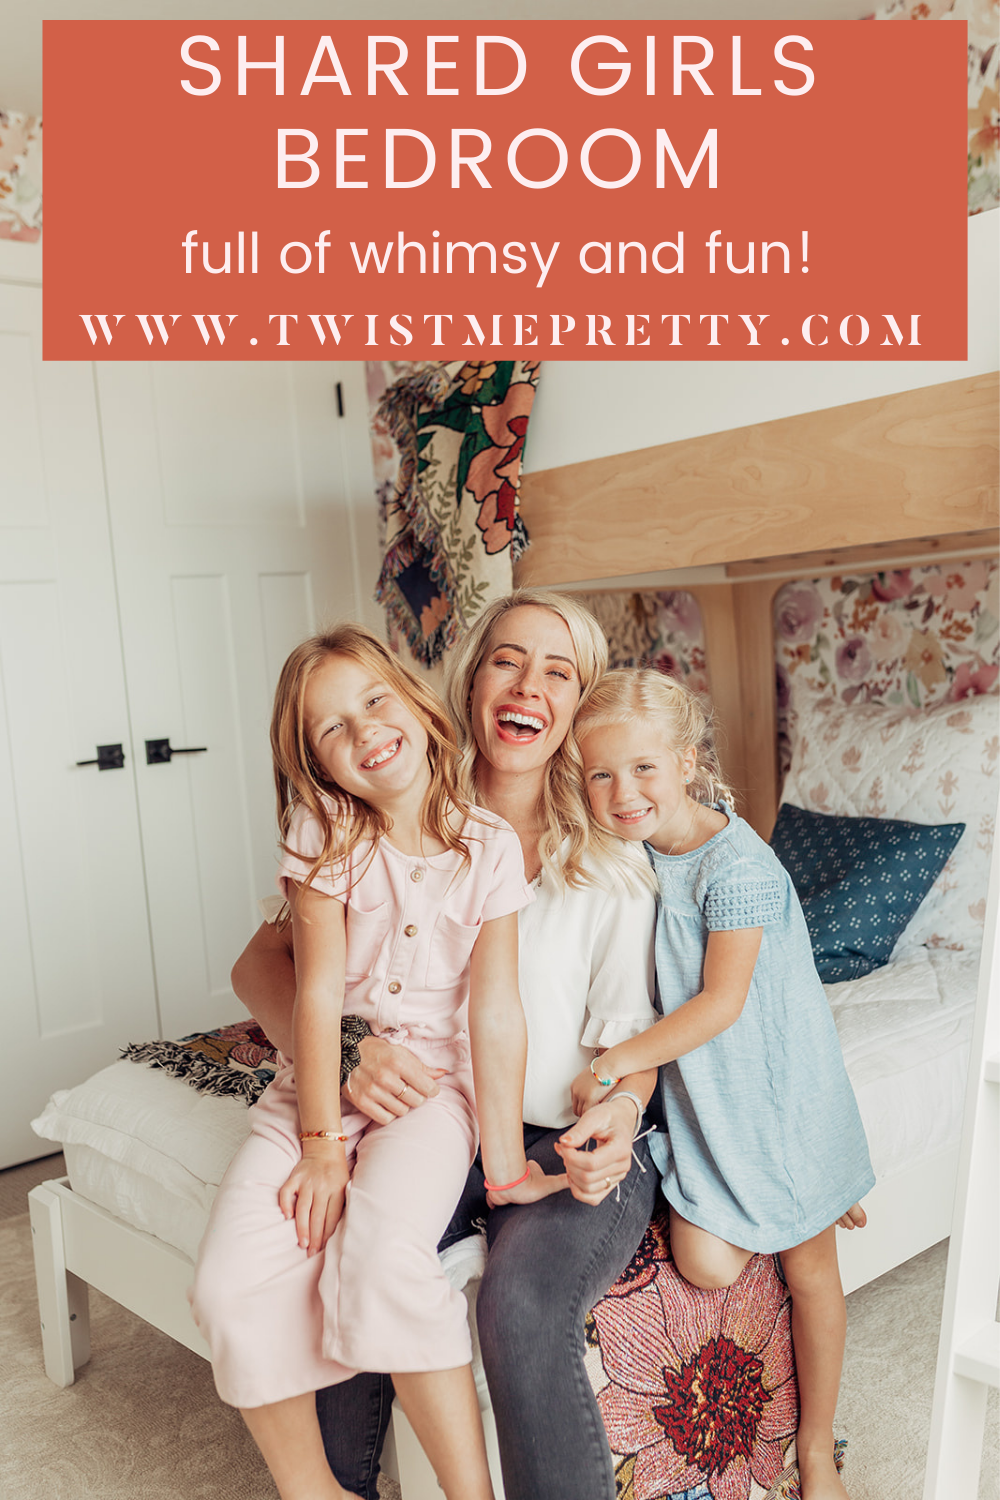 Shared Girls Bedroom full of whimsy and fun! www.twistmepretty.com